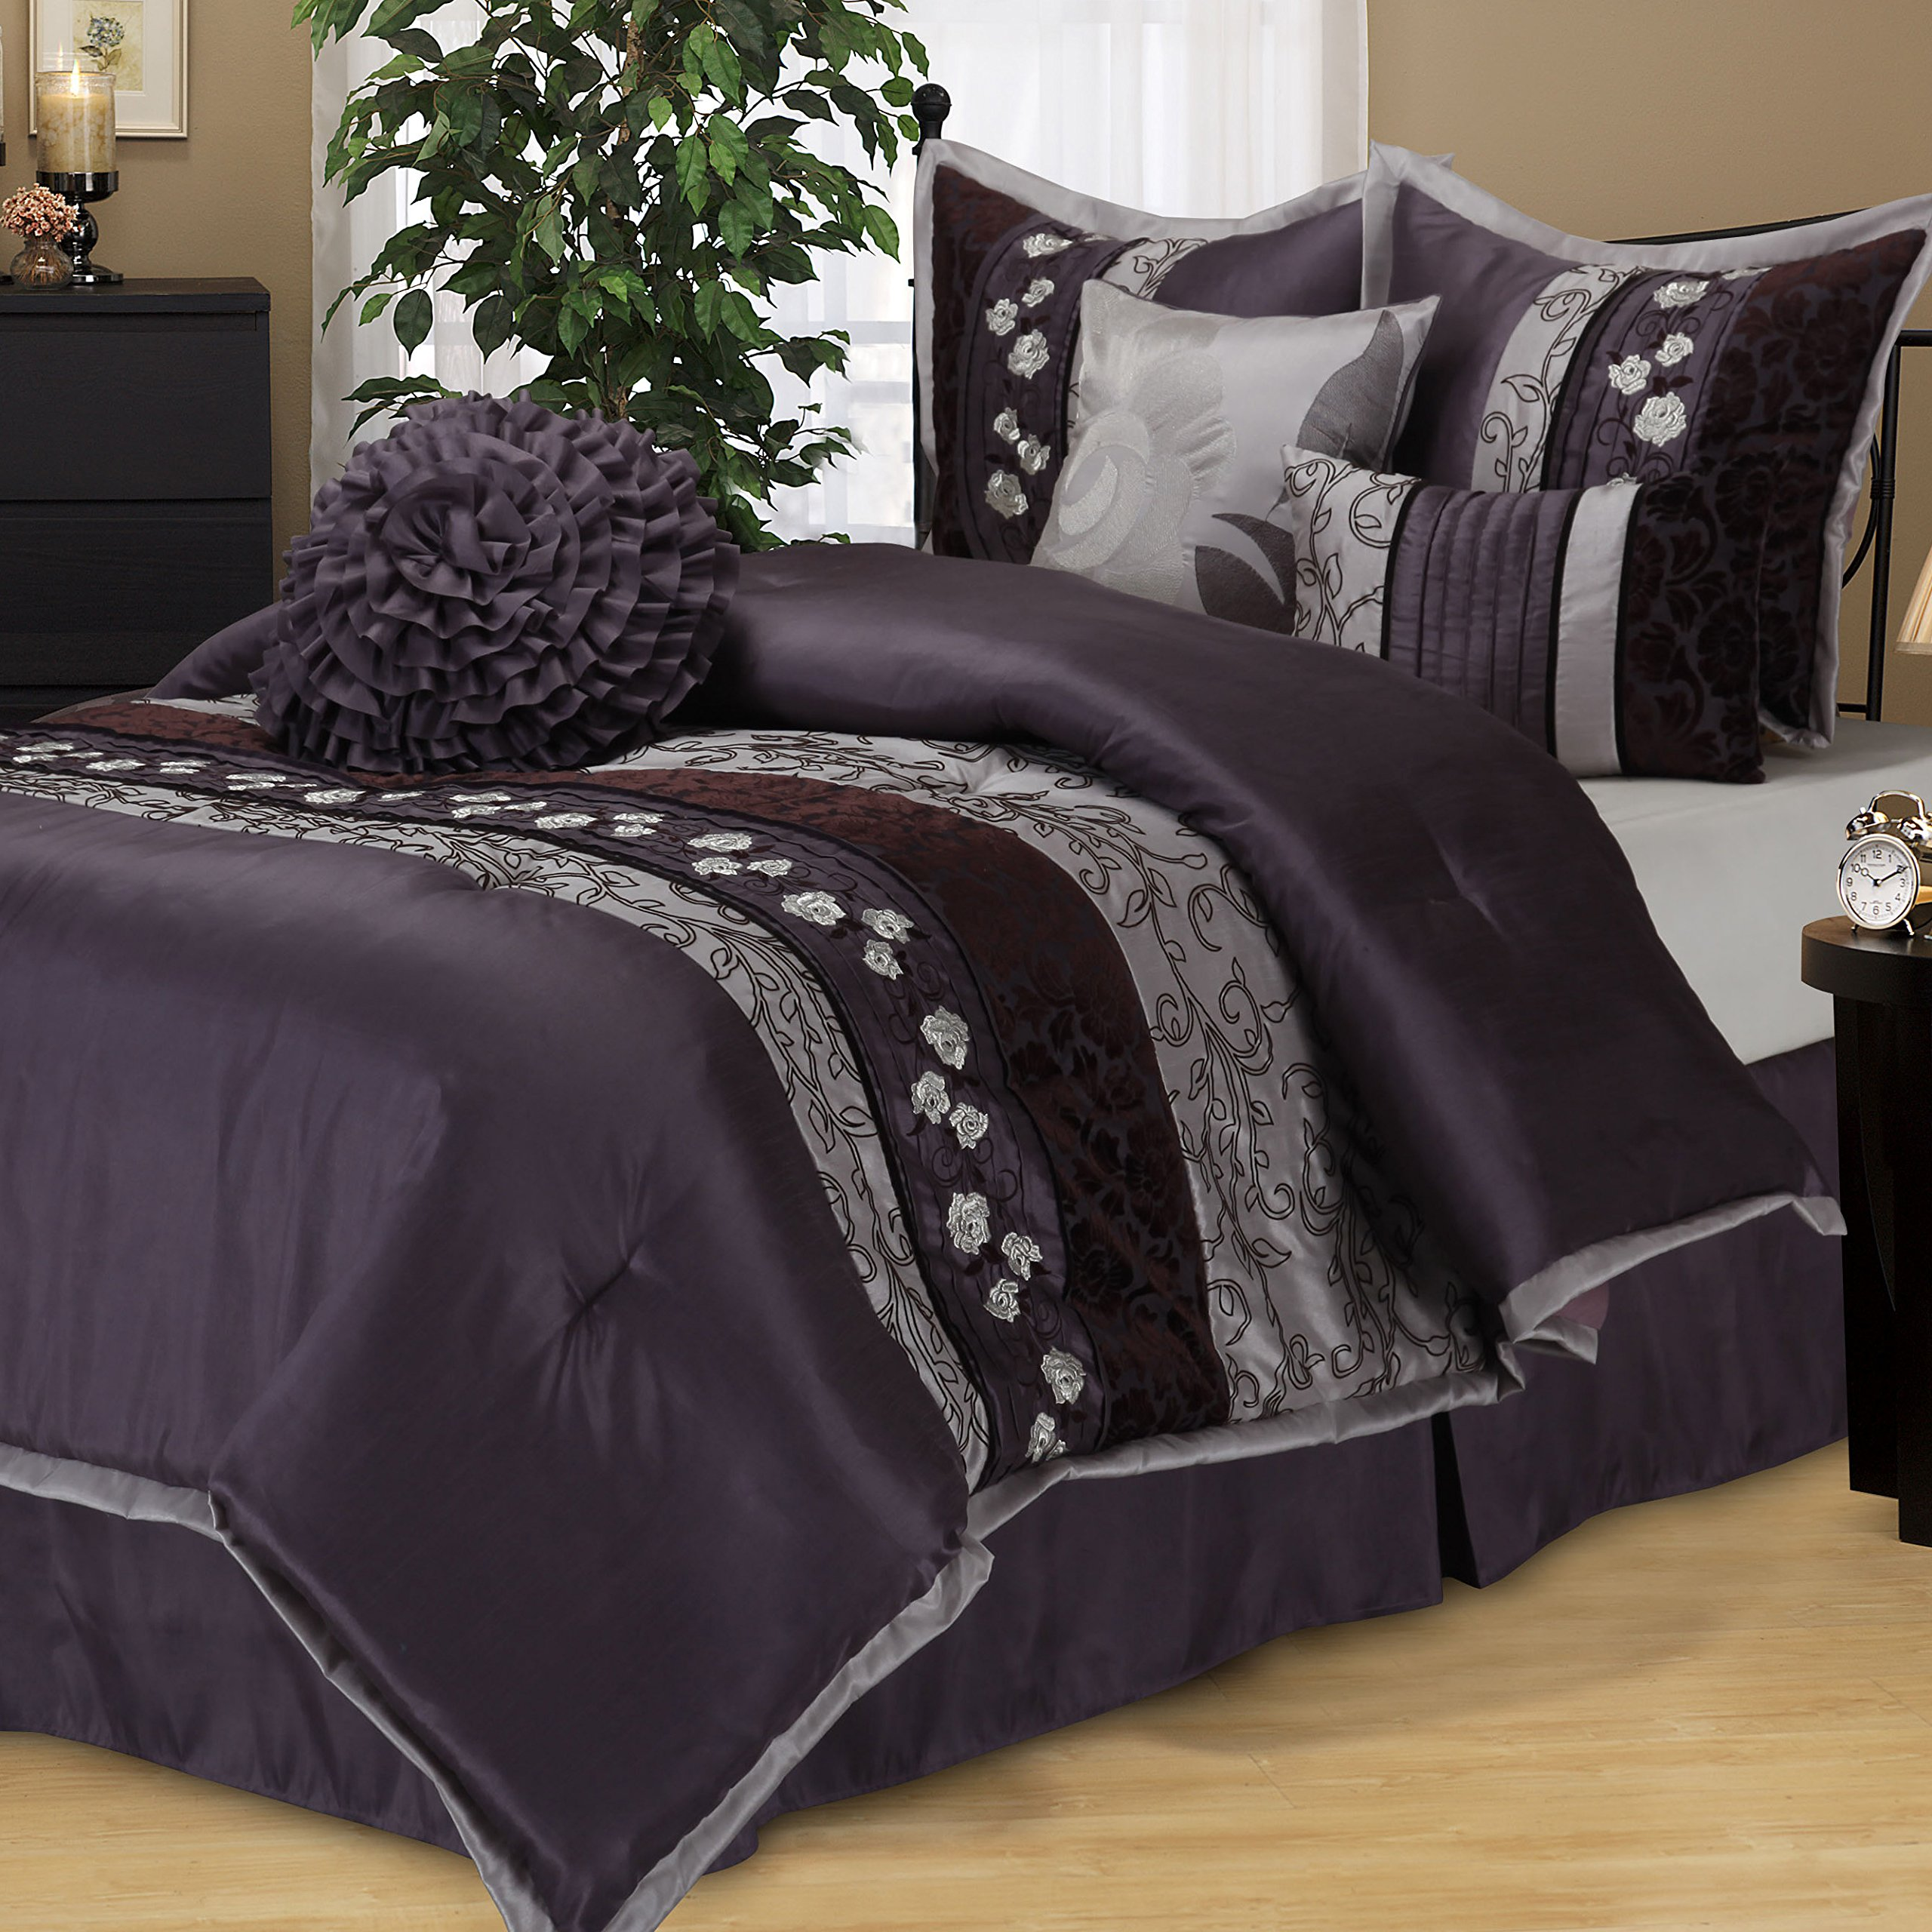 Nanshing RILEY-K-PUR 7 Pice Riley K-Bedding Set, Purple, King